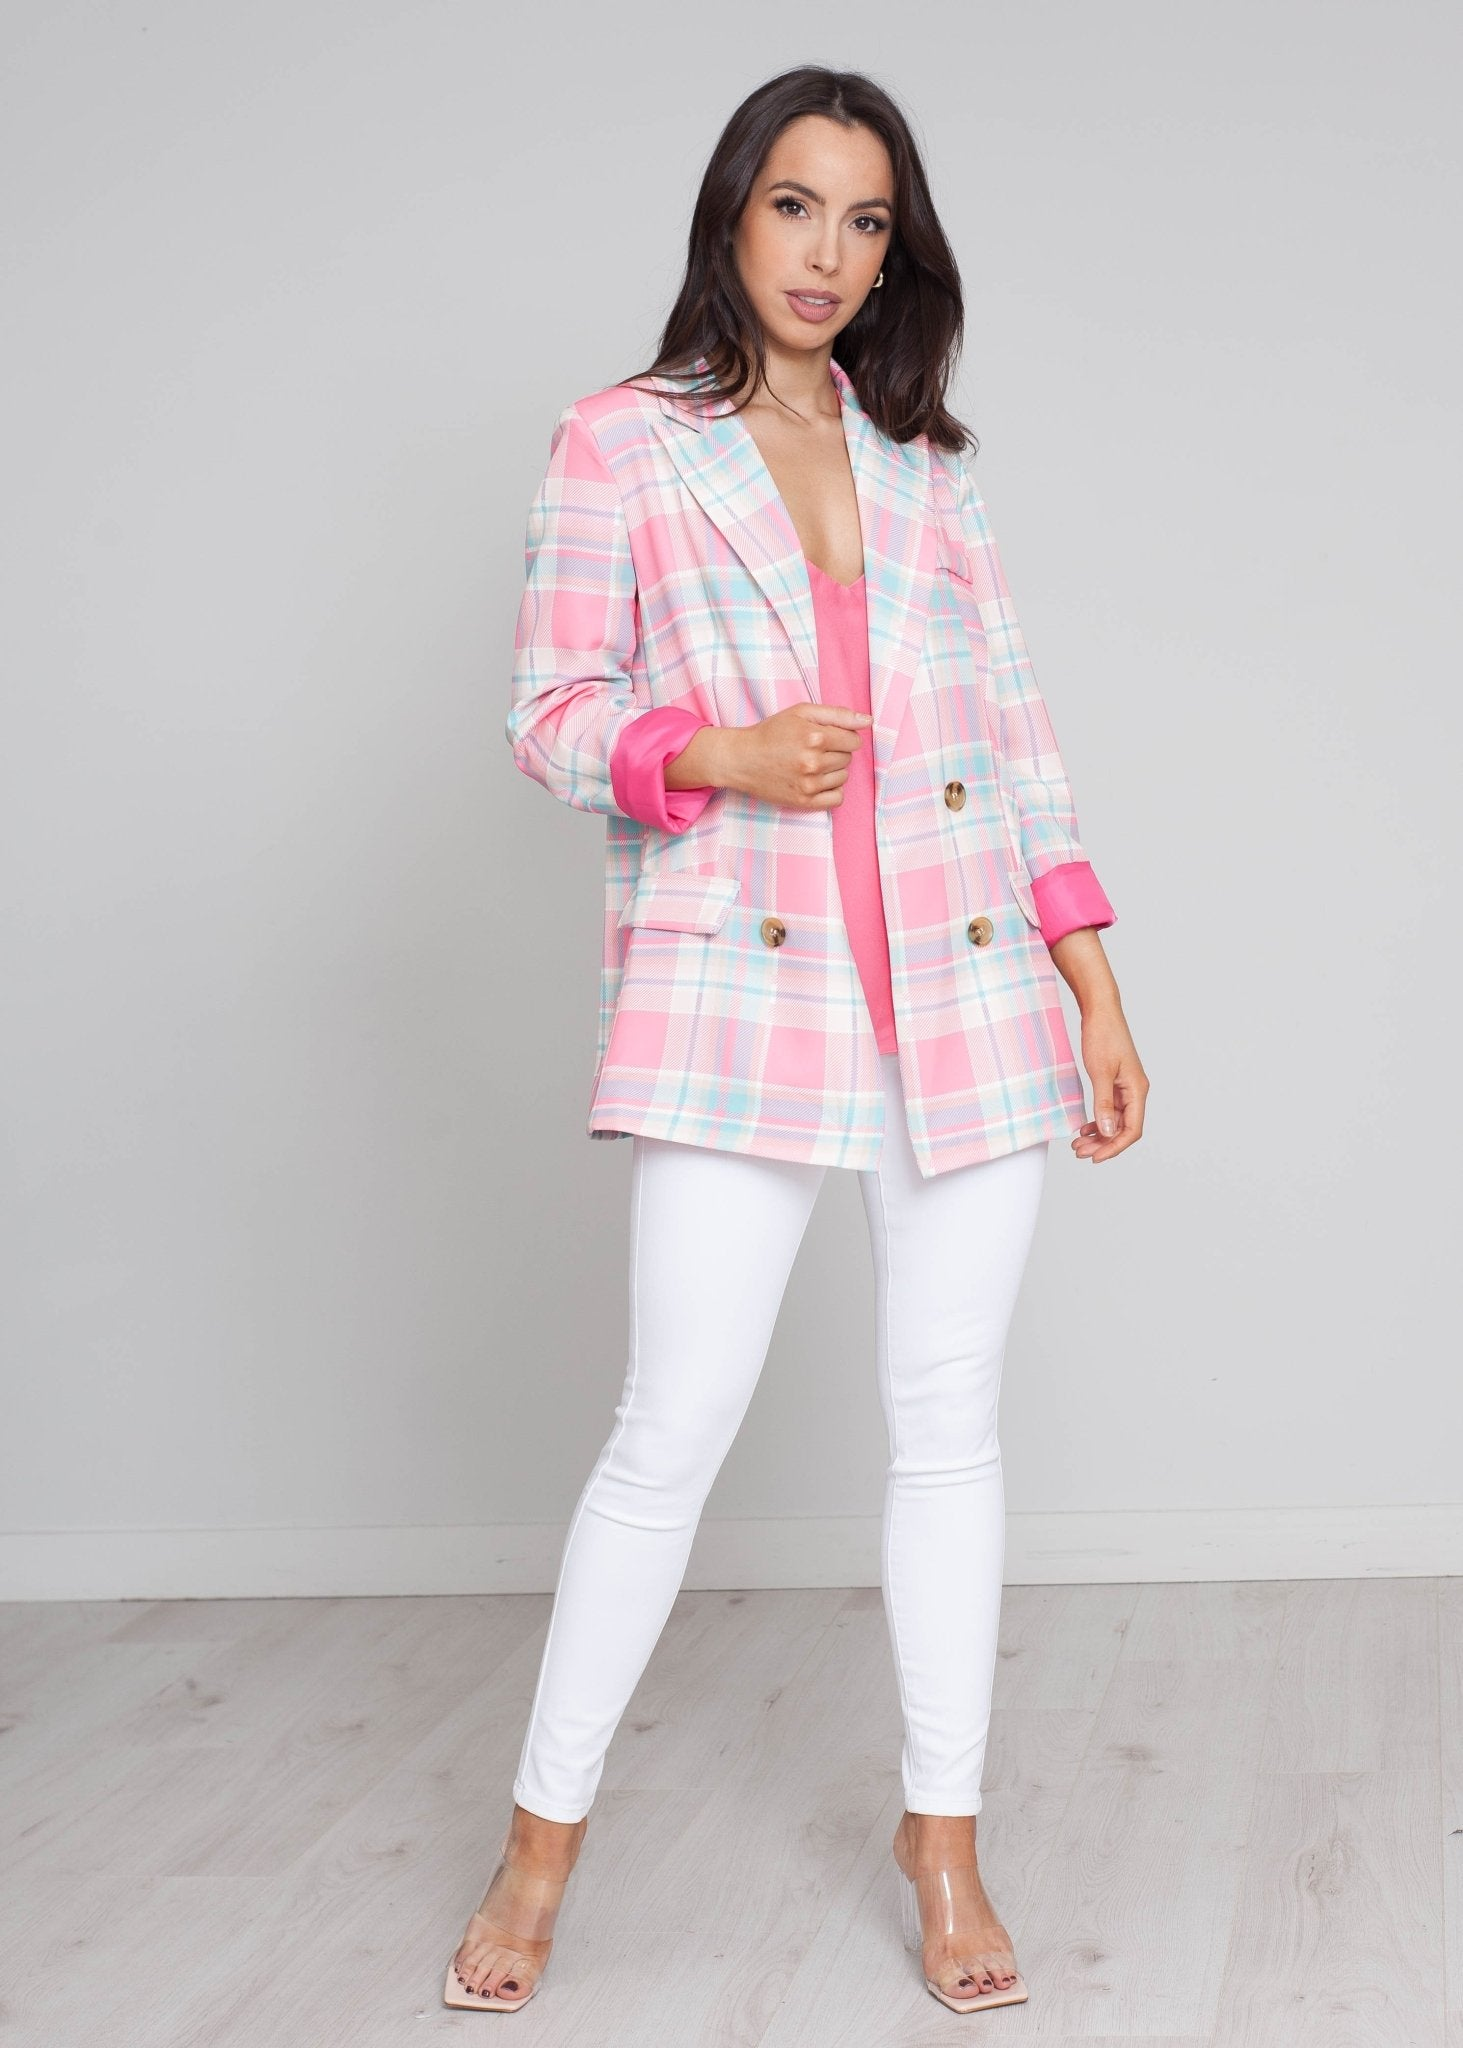 Elsa Blazer In Pink Check - The Walk in Wardrobe